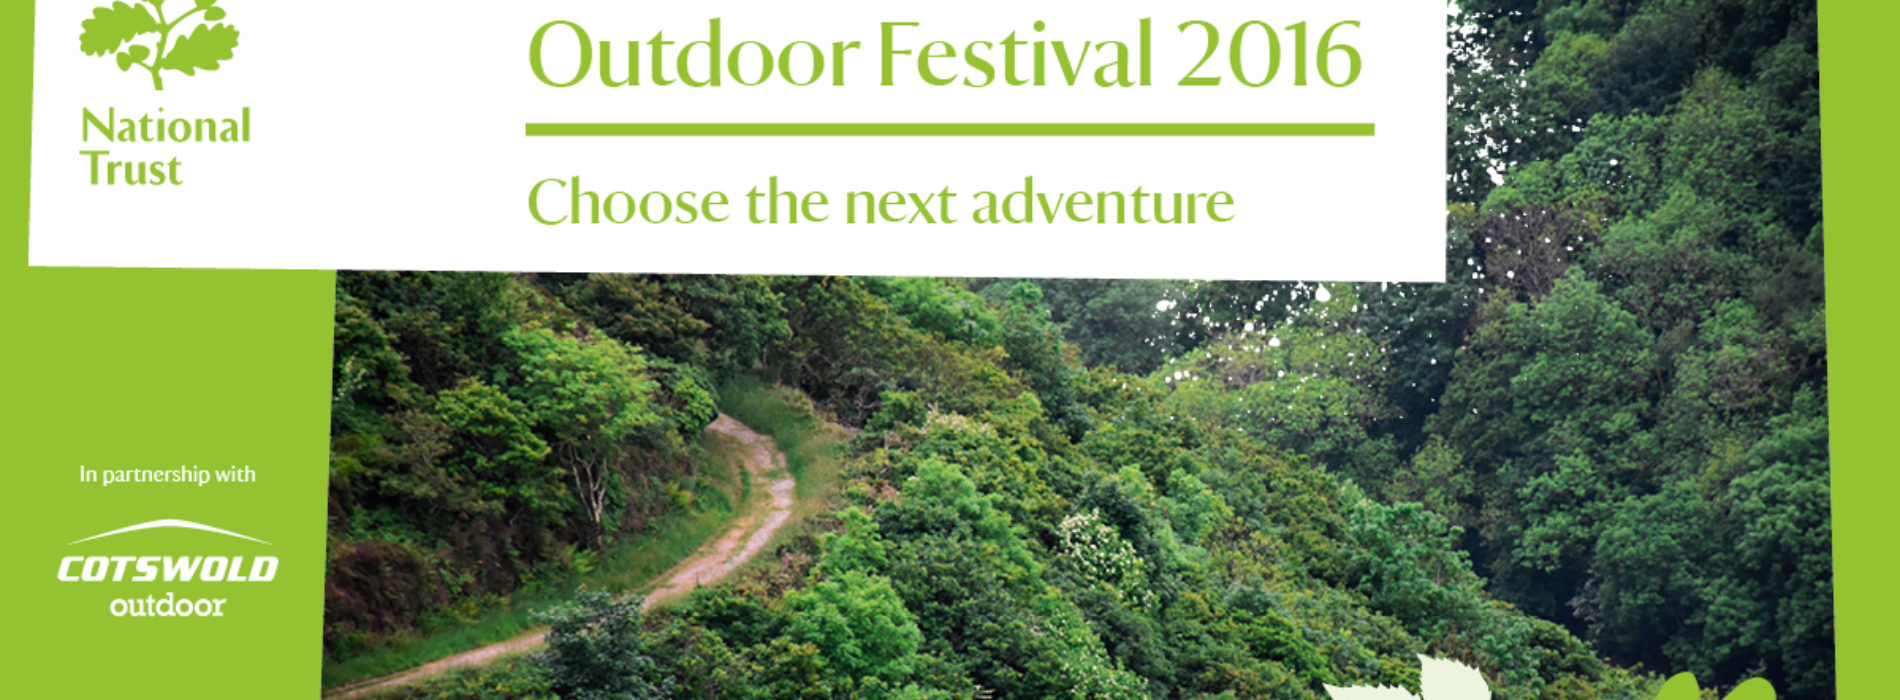 COMPETITION: win a £100 Cotswold Outdoor voucher with the National Trust